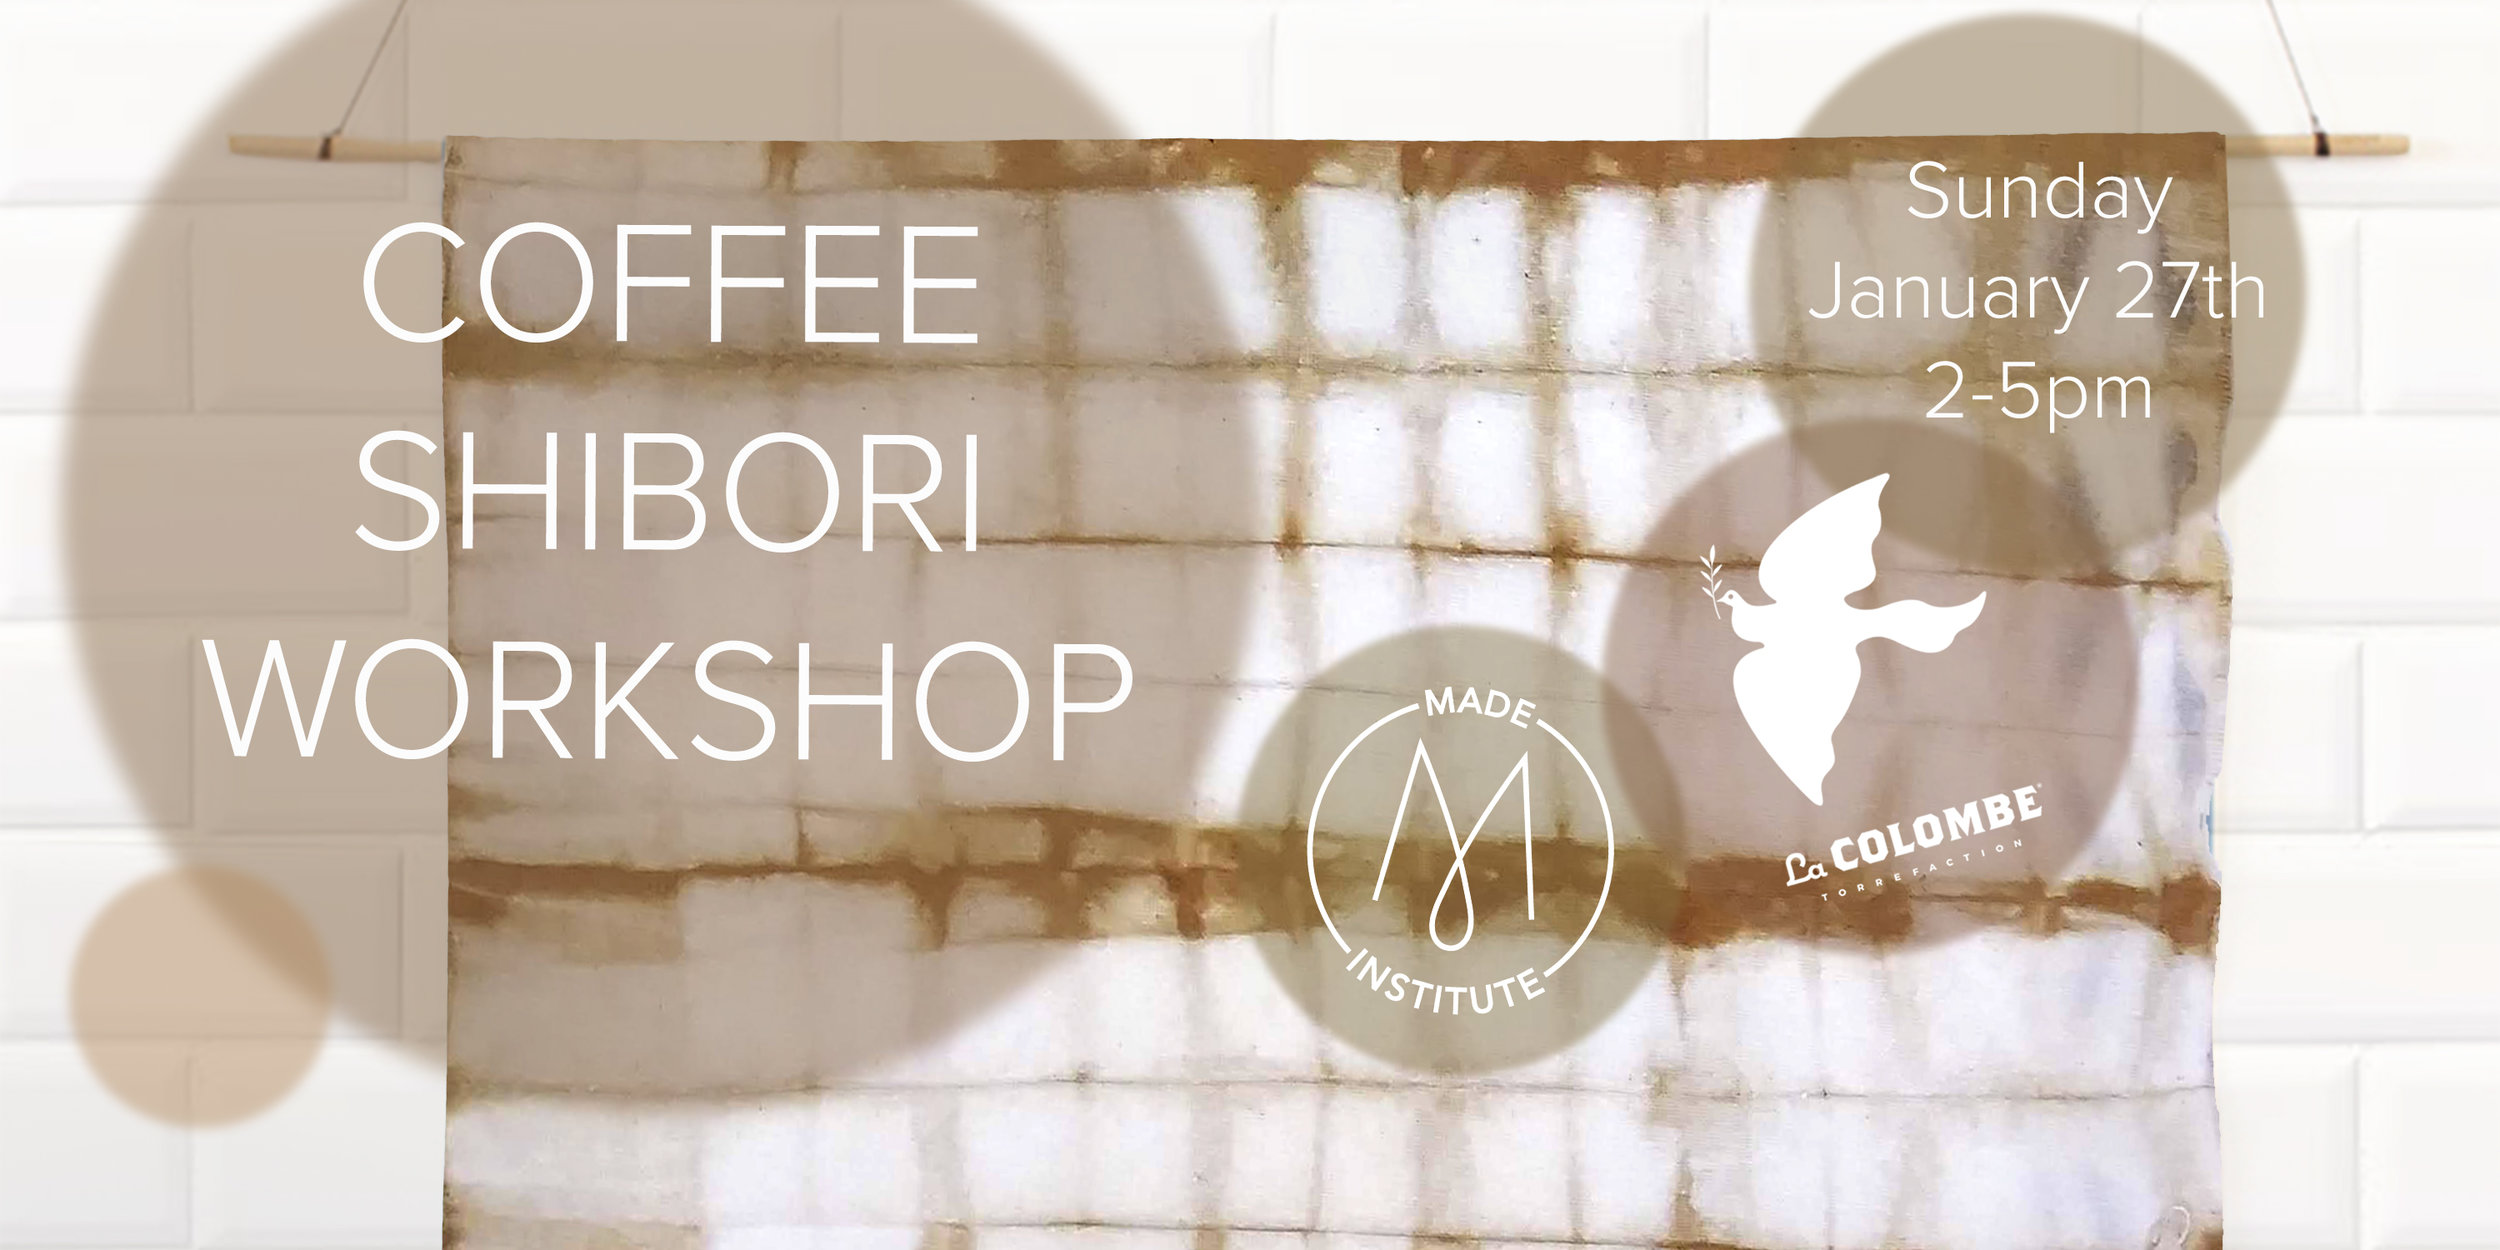 Learn the Japanese art of Shibori Dyeing with Eco-friendly coffee dye. Join us at La Colombe Fishtown for our first coffee collab and bring home a beautiful scarf designed and dyed by you! Coffee and Pastries included!